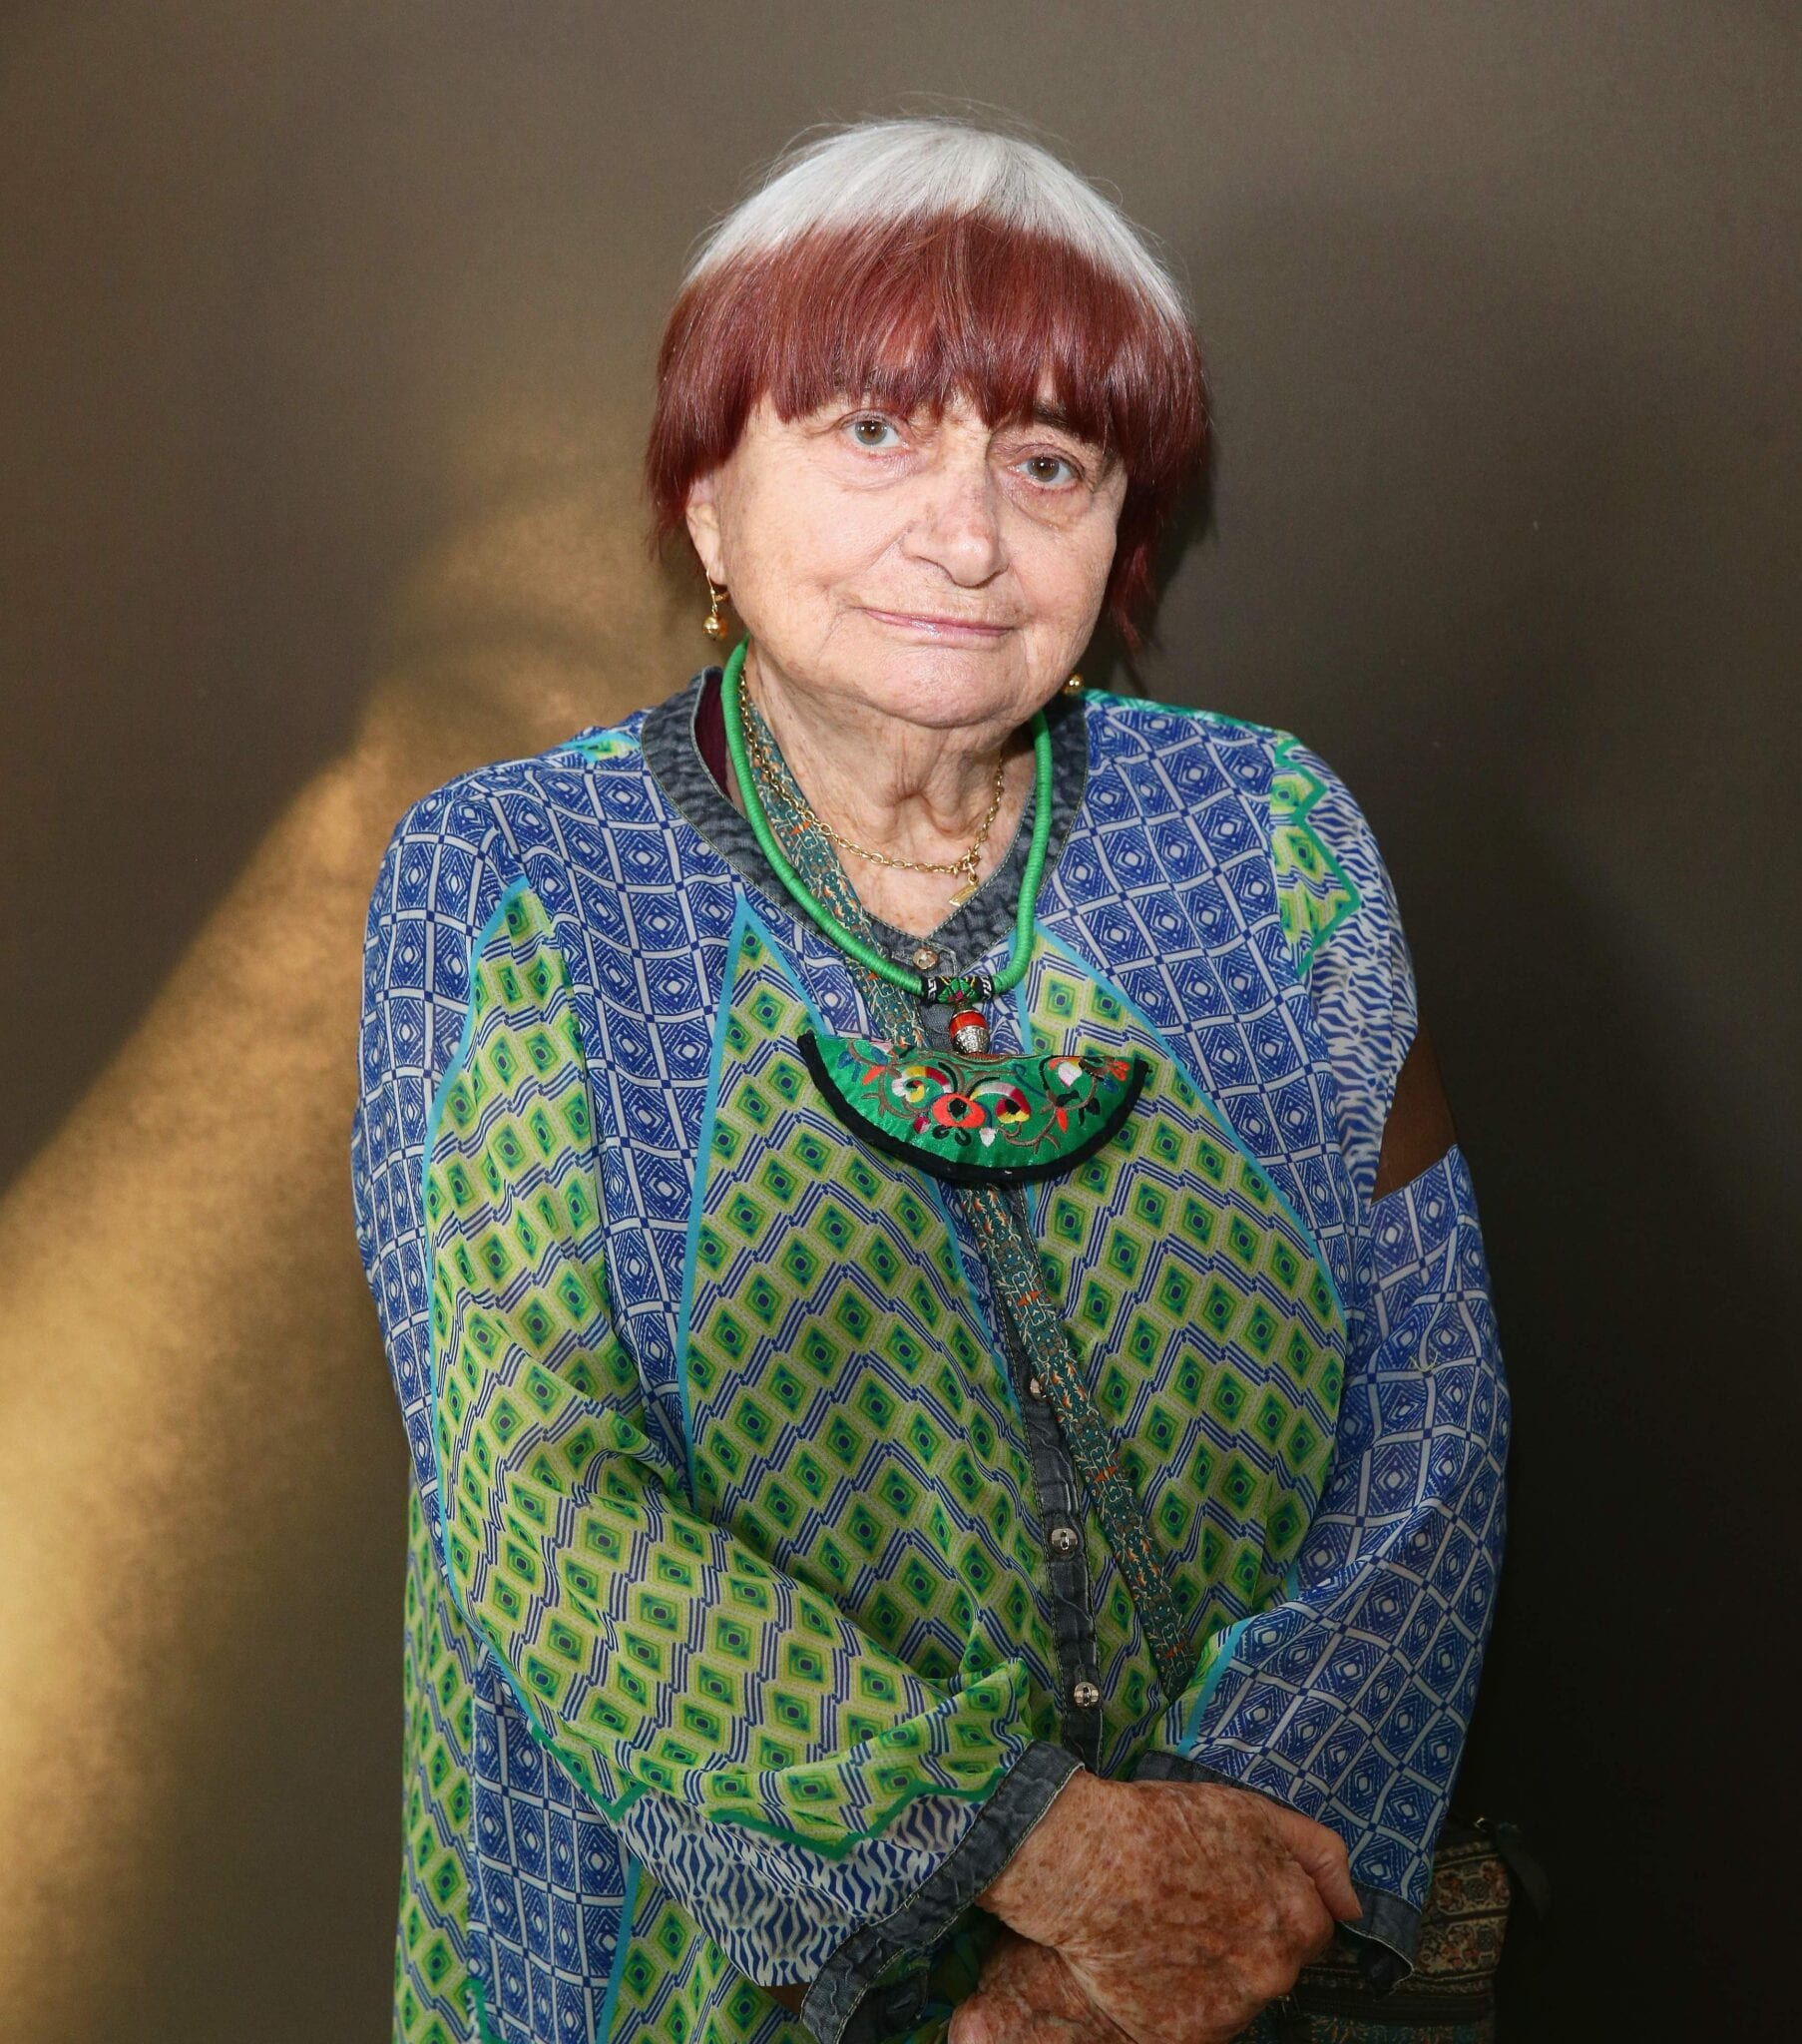 CANNES, FRANCE - MAY 23: Agnes Varda Attends Kering Talks 'Women In Motion' At The 68th Annual Cannes Film Festival On May 23, 2015 In Cannes, France. (Photo By Vittorio Zunino Celotto/Getty Images For Kering)